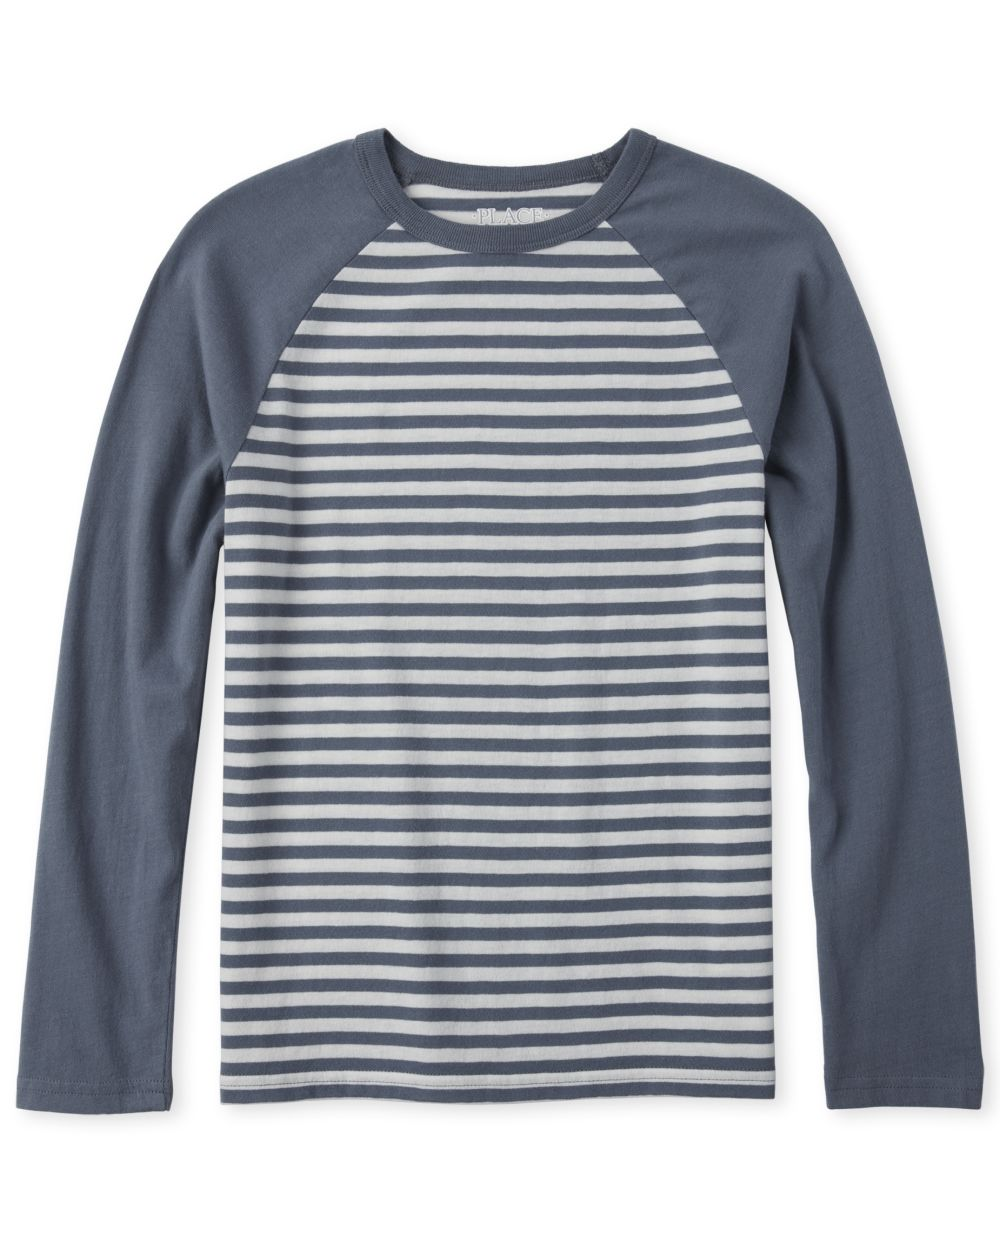 Boys Striped Top